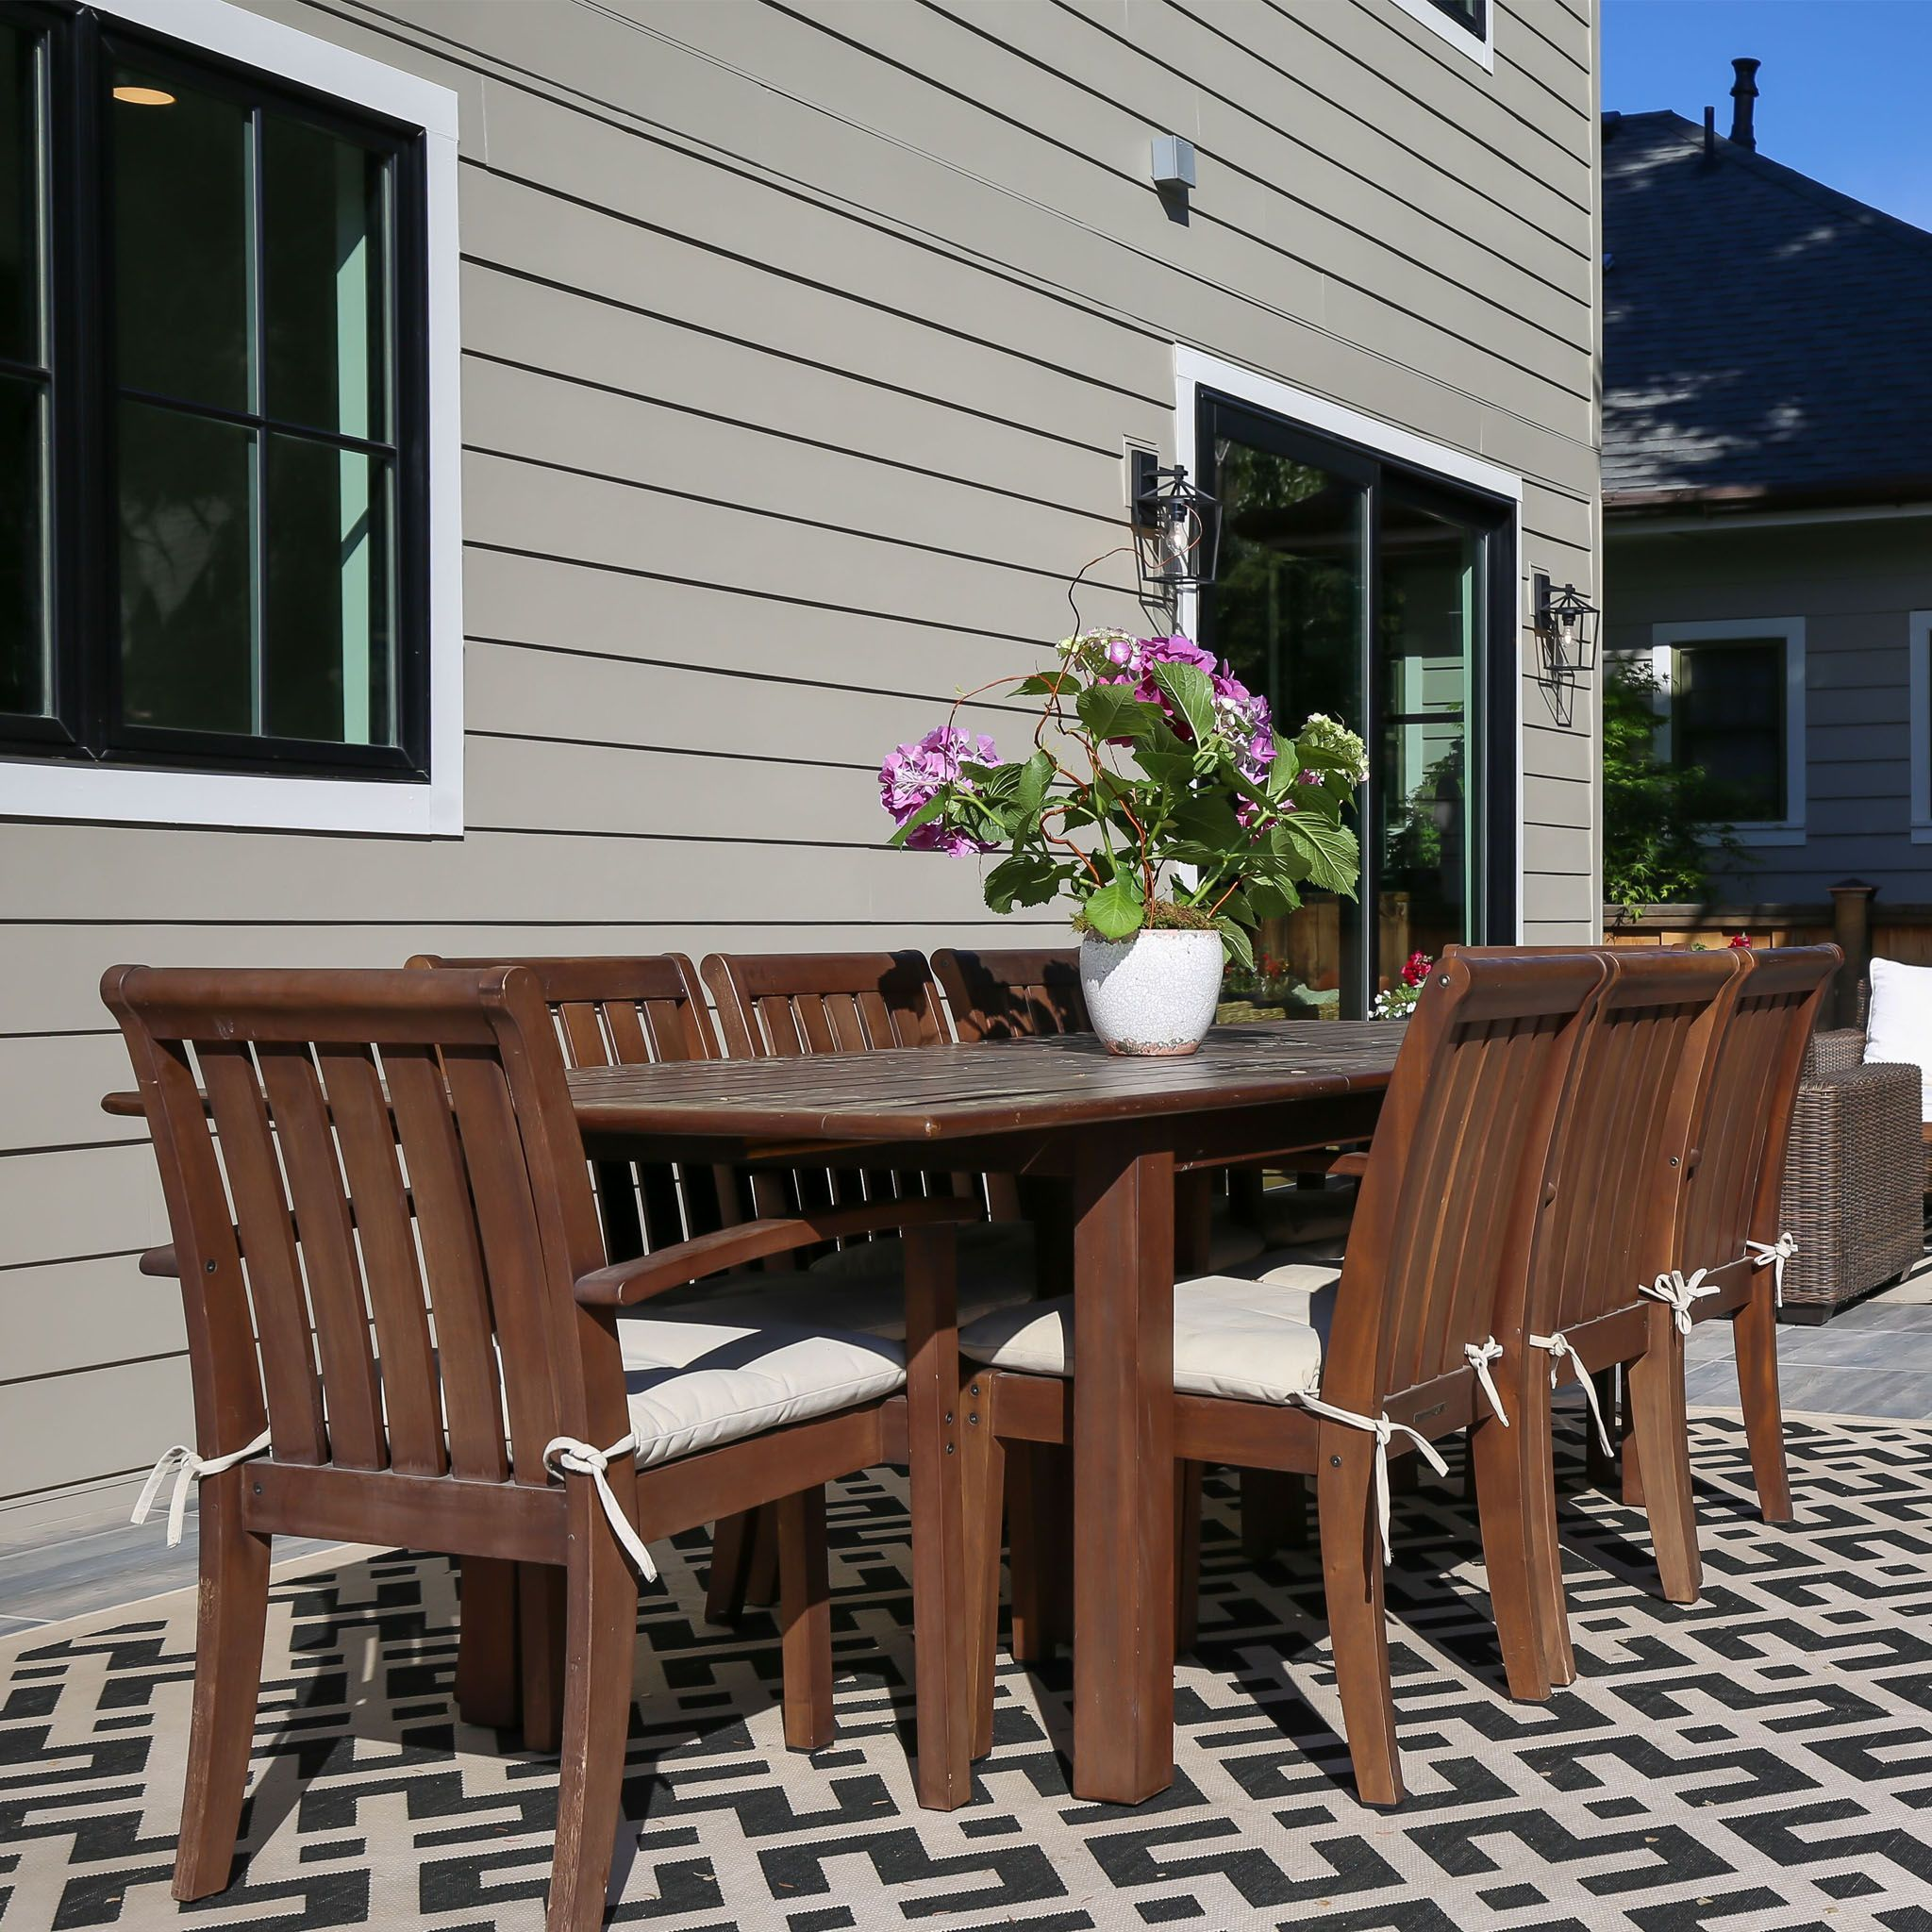 Patio Furniture Store Boise: Wooden Outdoor Table, Outdoor Furniture Sets